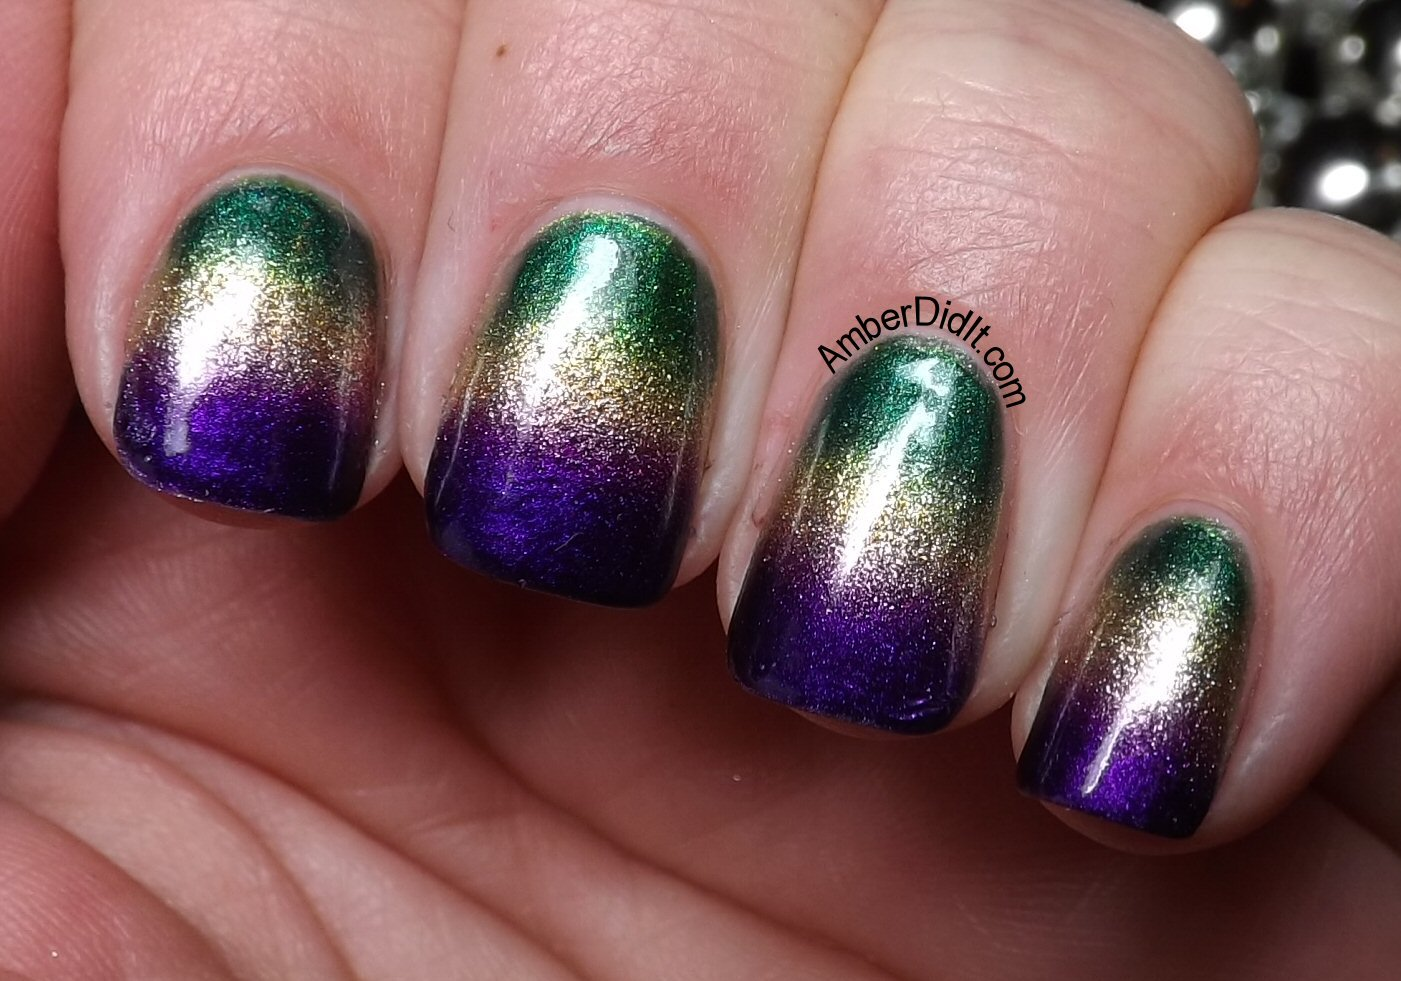 Amber did it!: Mardi Gras Gradient Nails